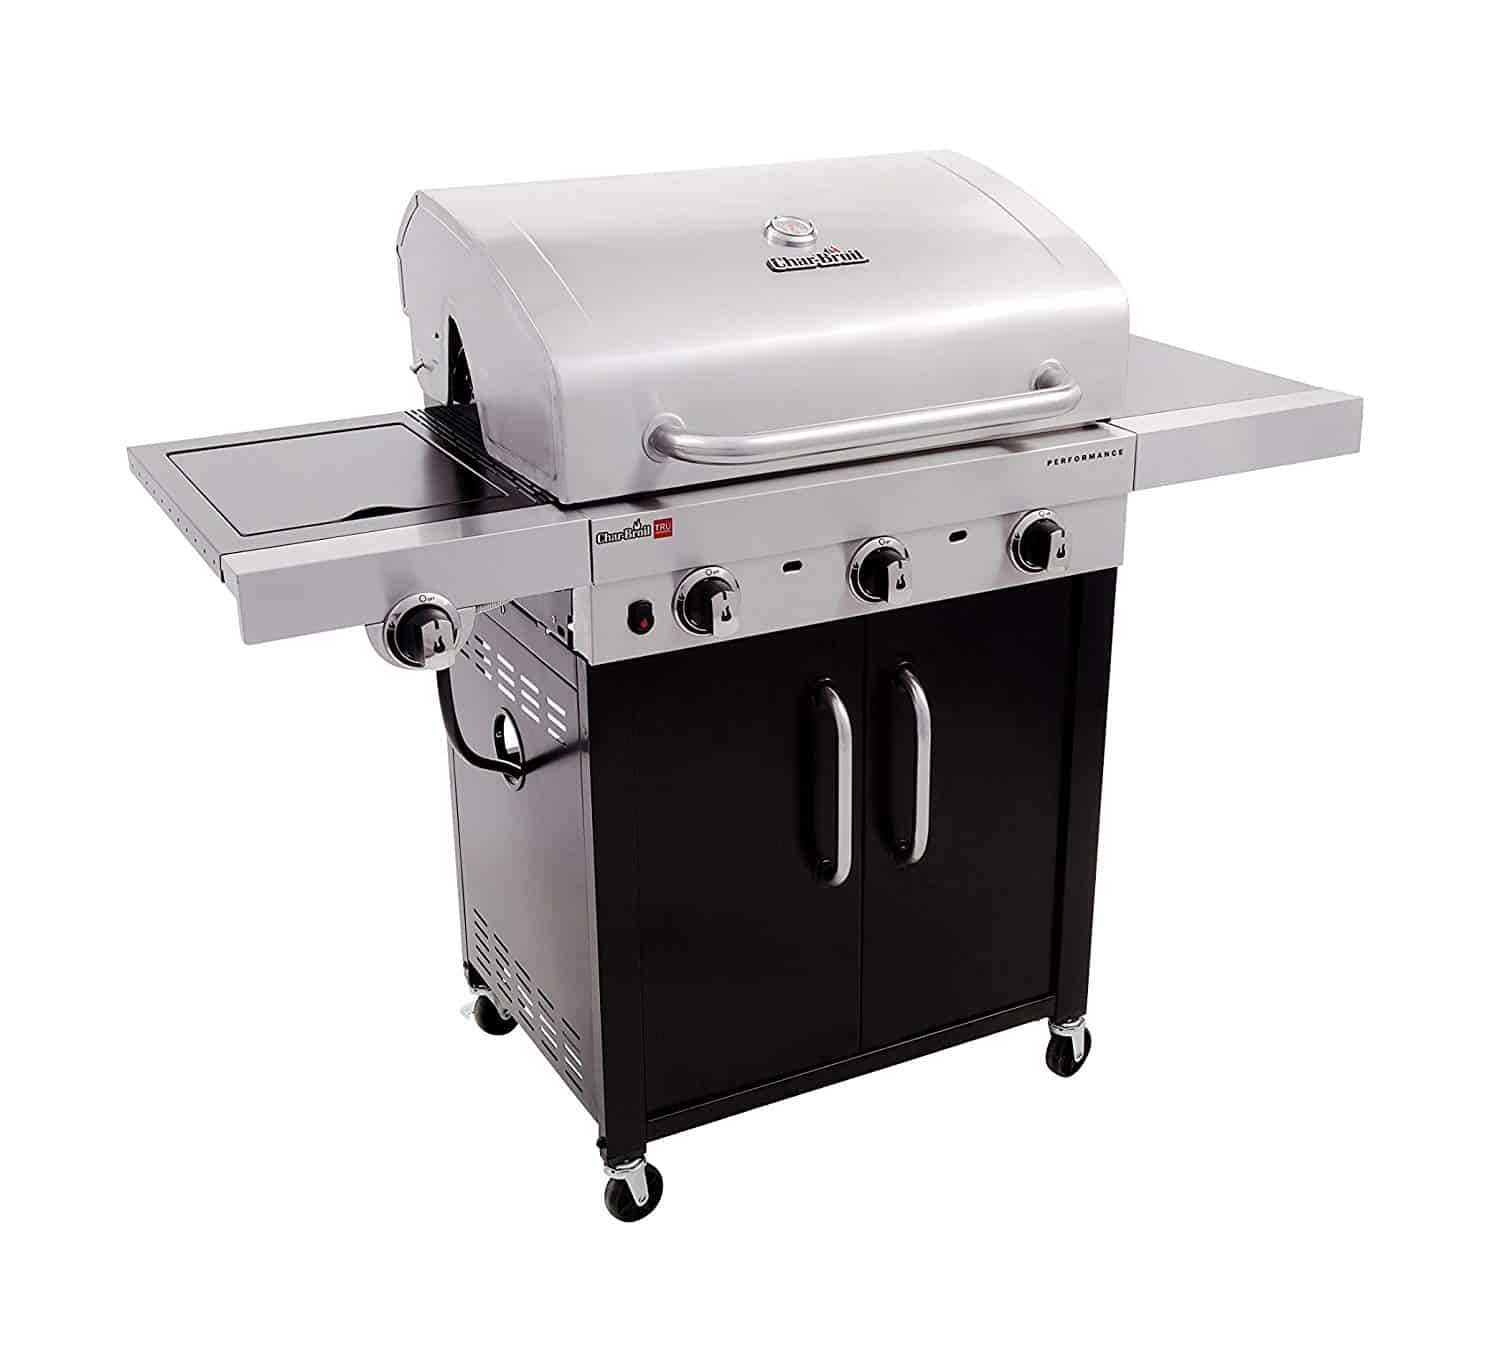 Best budget infrared grill is this char-broil